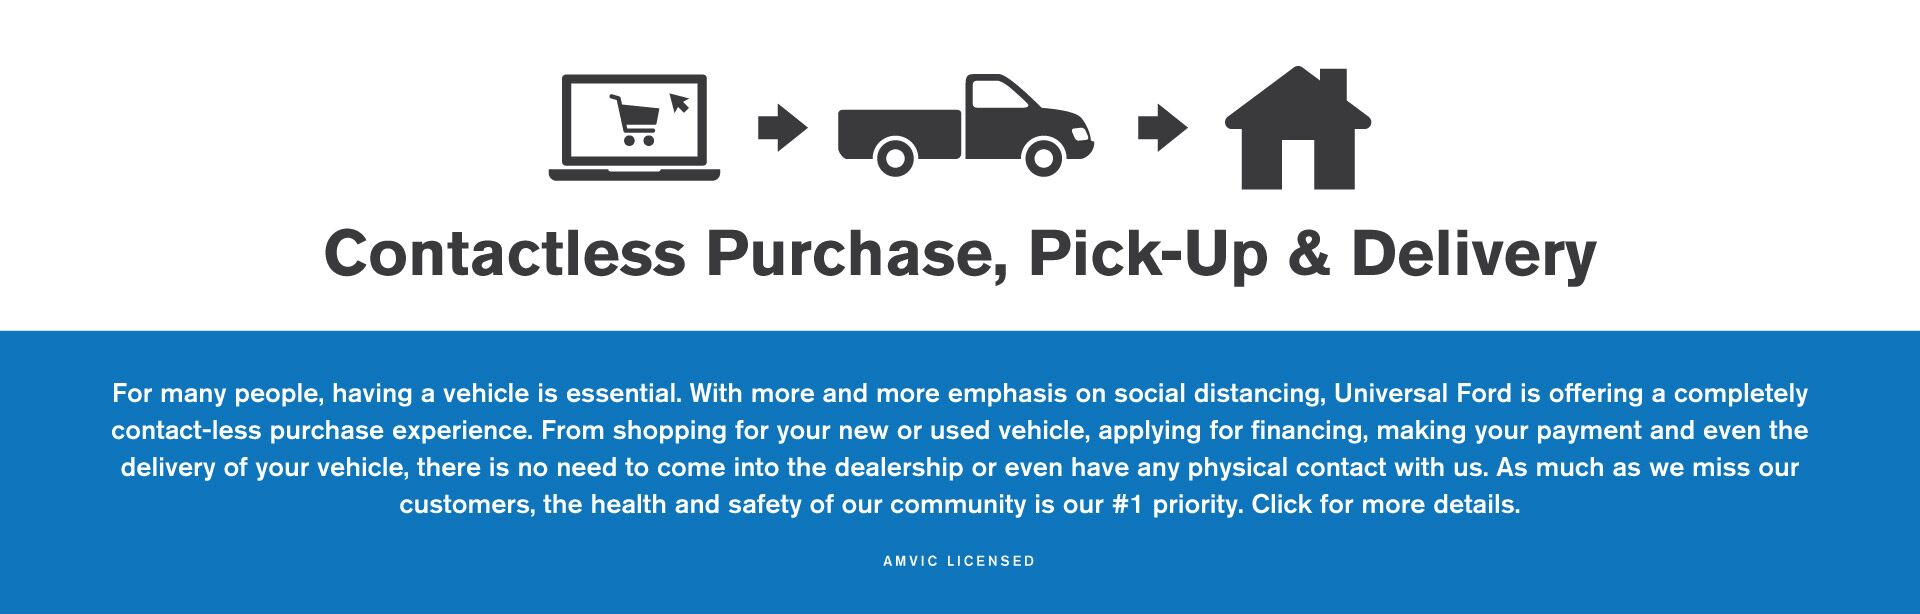 Contactless Purchase, Pick-Up & Delivery